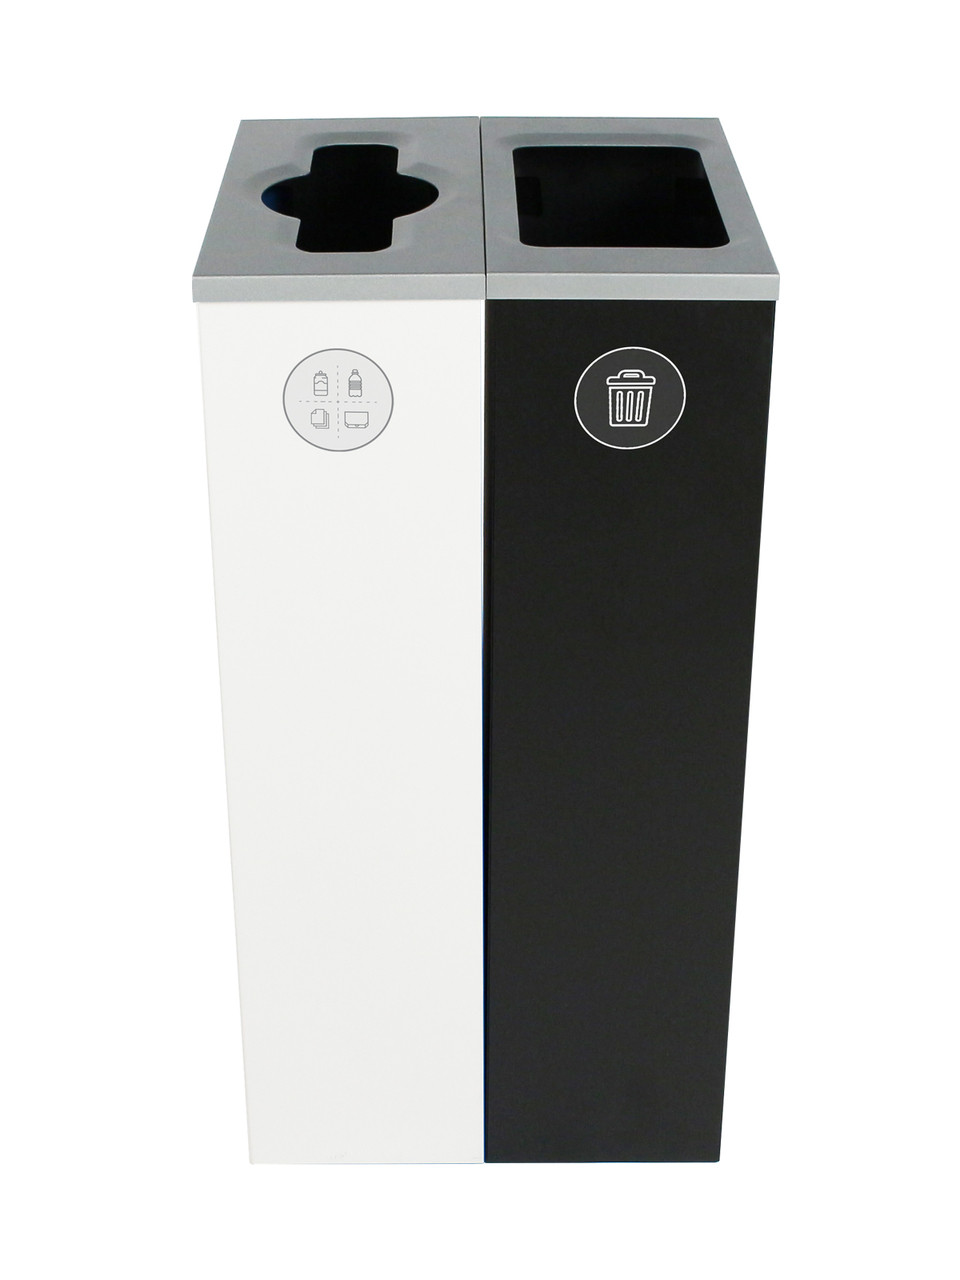 20 Gallon Spectrum Slim Dual Trash Can & Recycle Bin White/Black 8107097-24